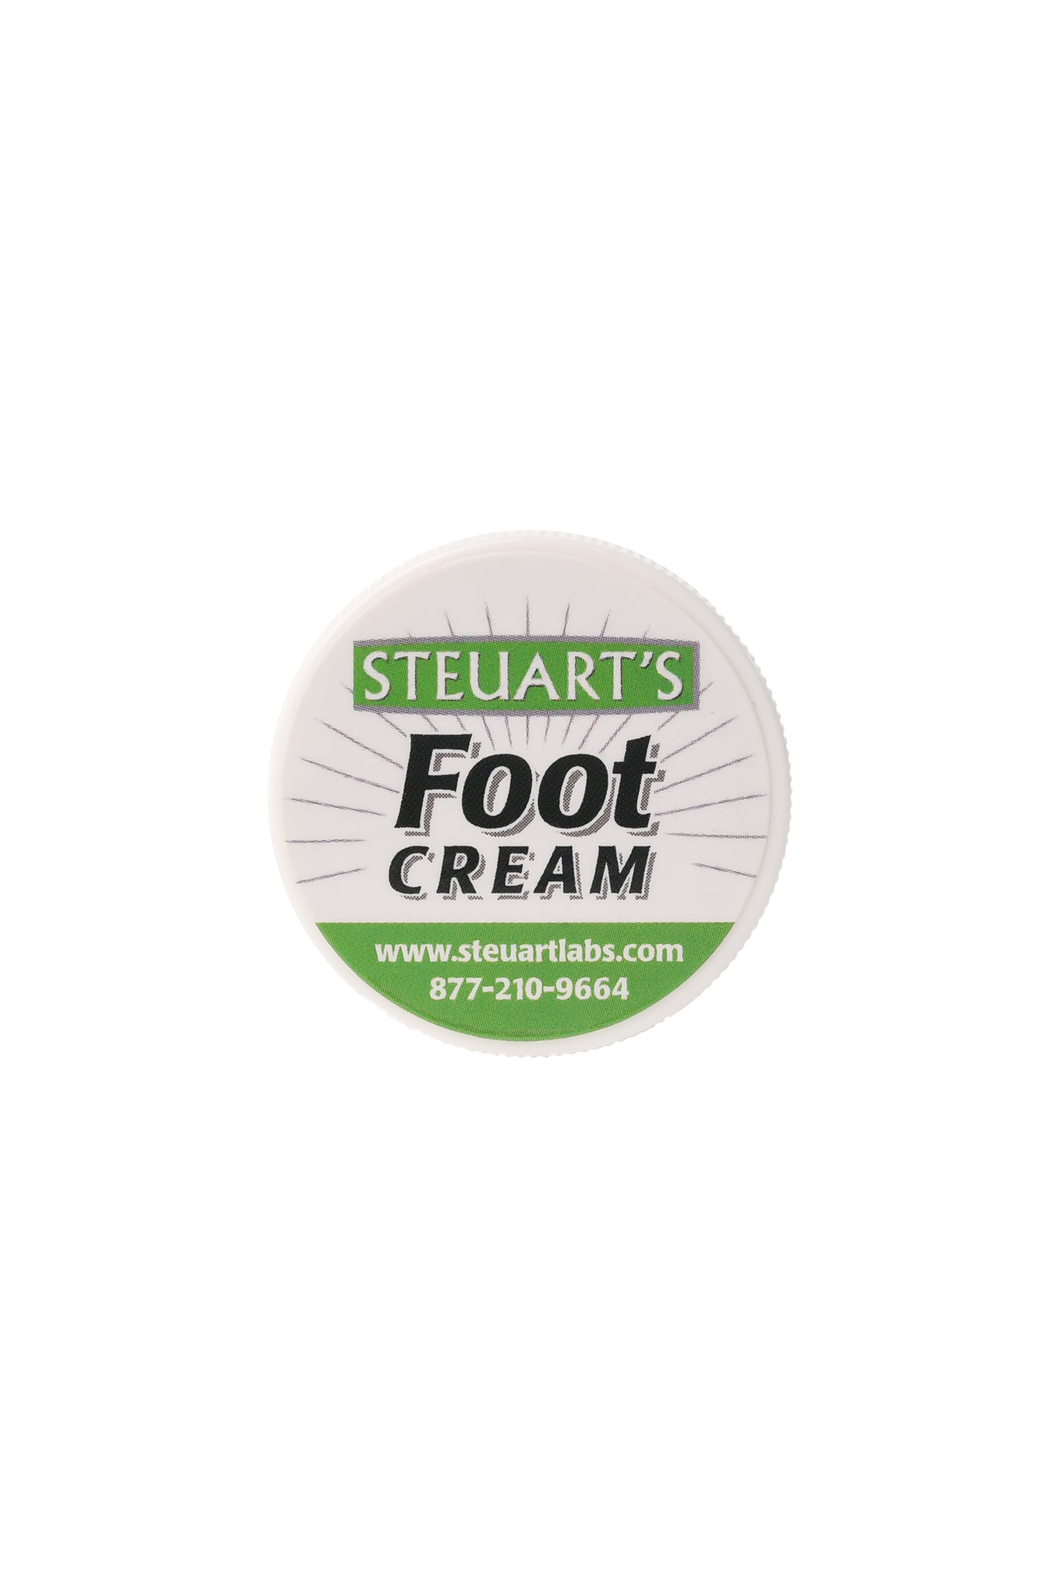 Steuart's Foot Cream Sample